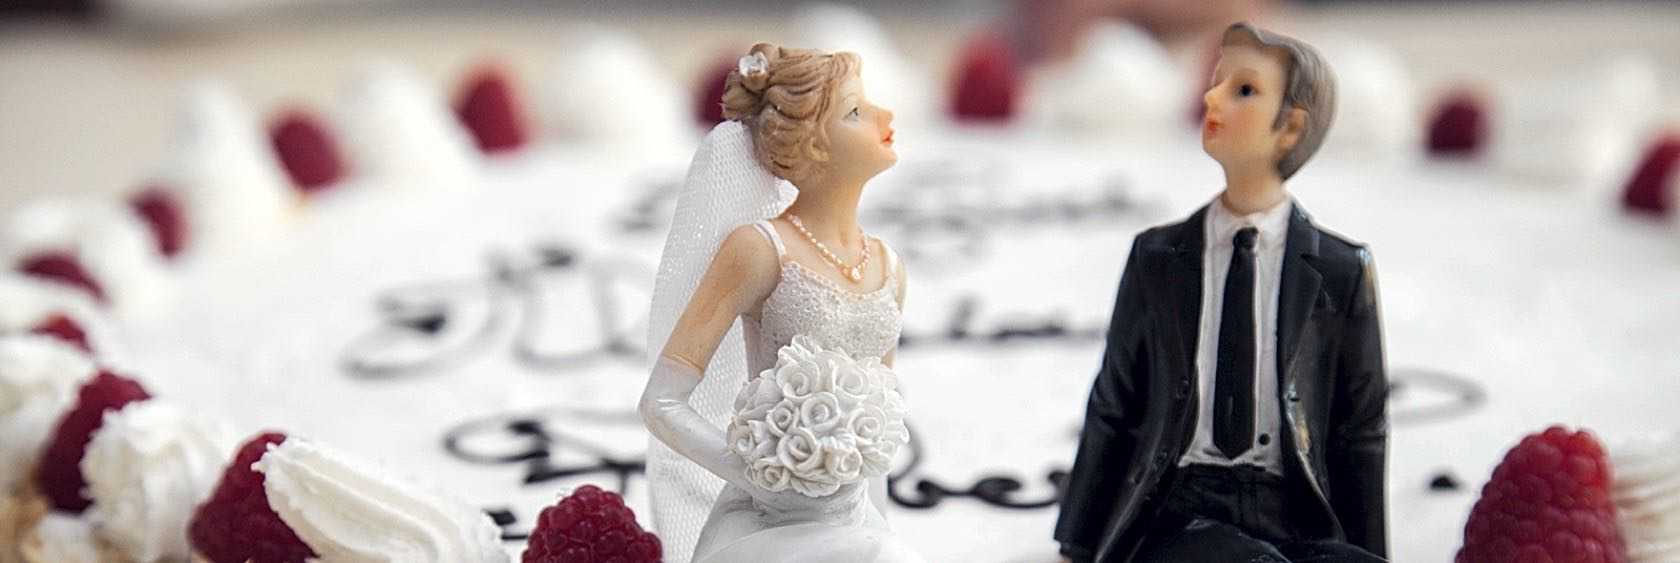 Ornament of married couple on a cake